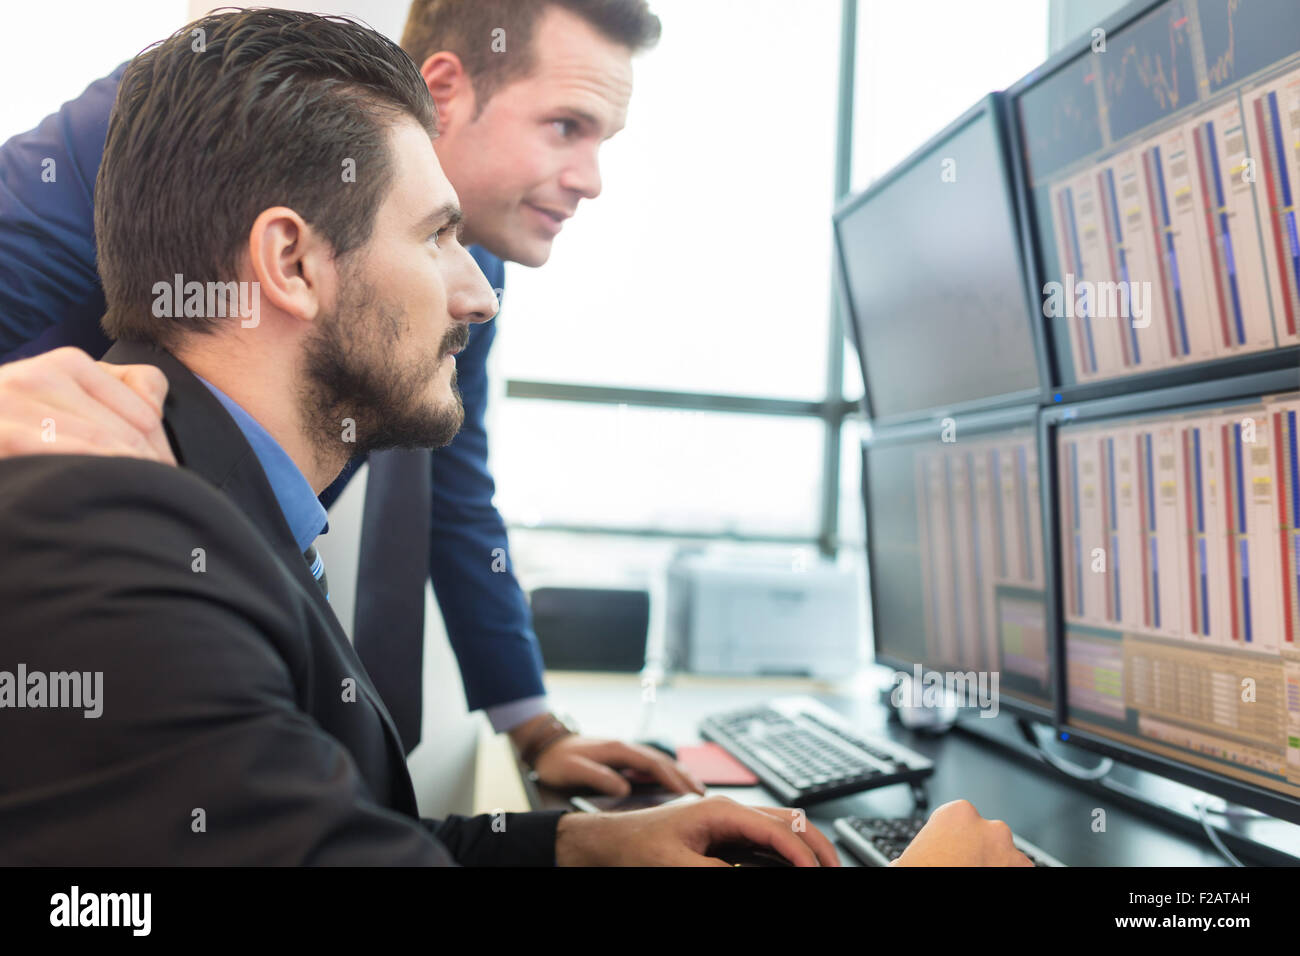 Stock traders looking at computer screens. - Stock Image